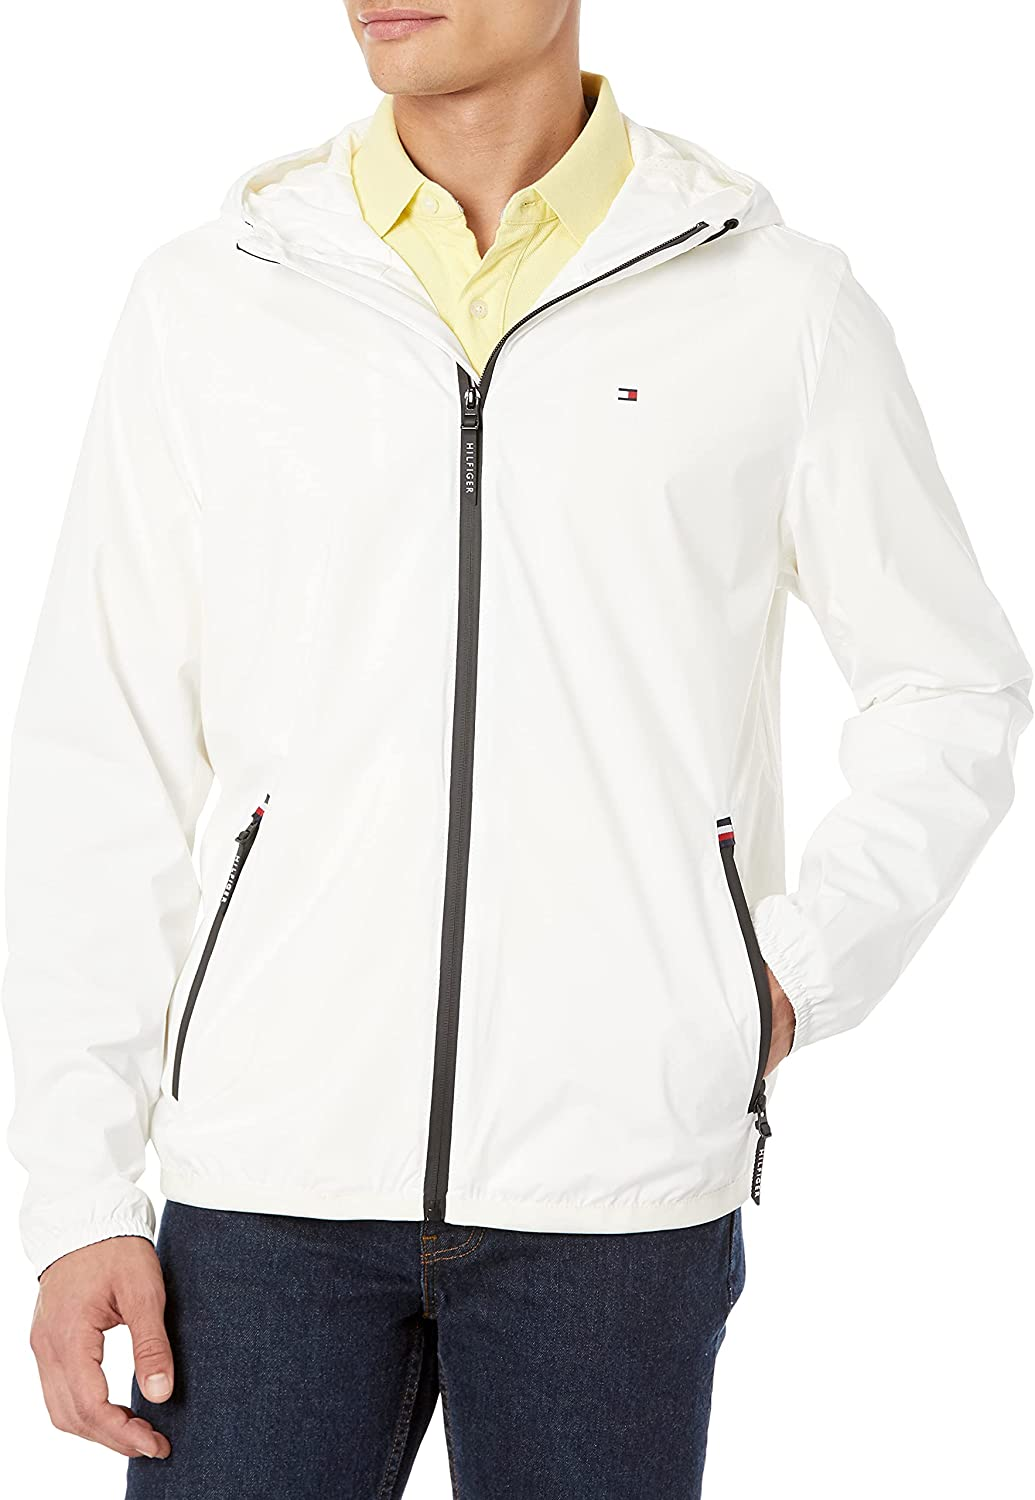 Tommy Hilfiger Men's Lightweight Active Resistant Hooded San Antonio Mall R Water Free Shipping New